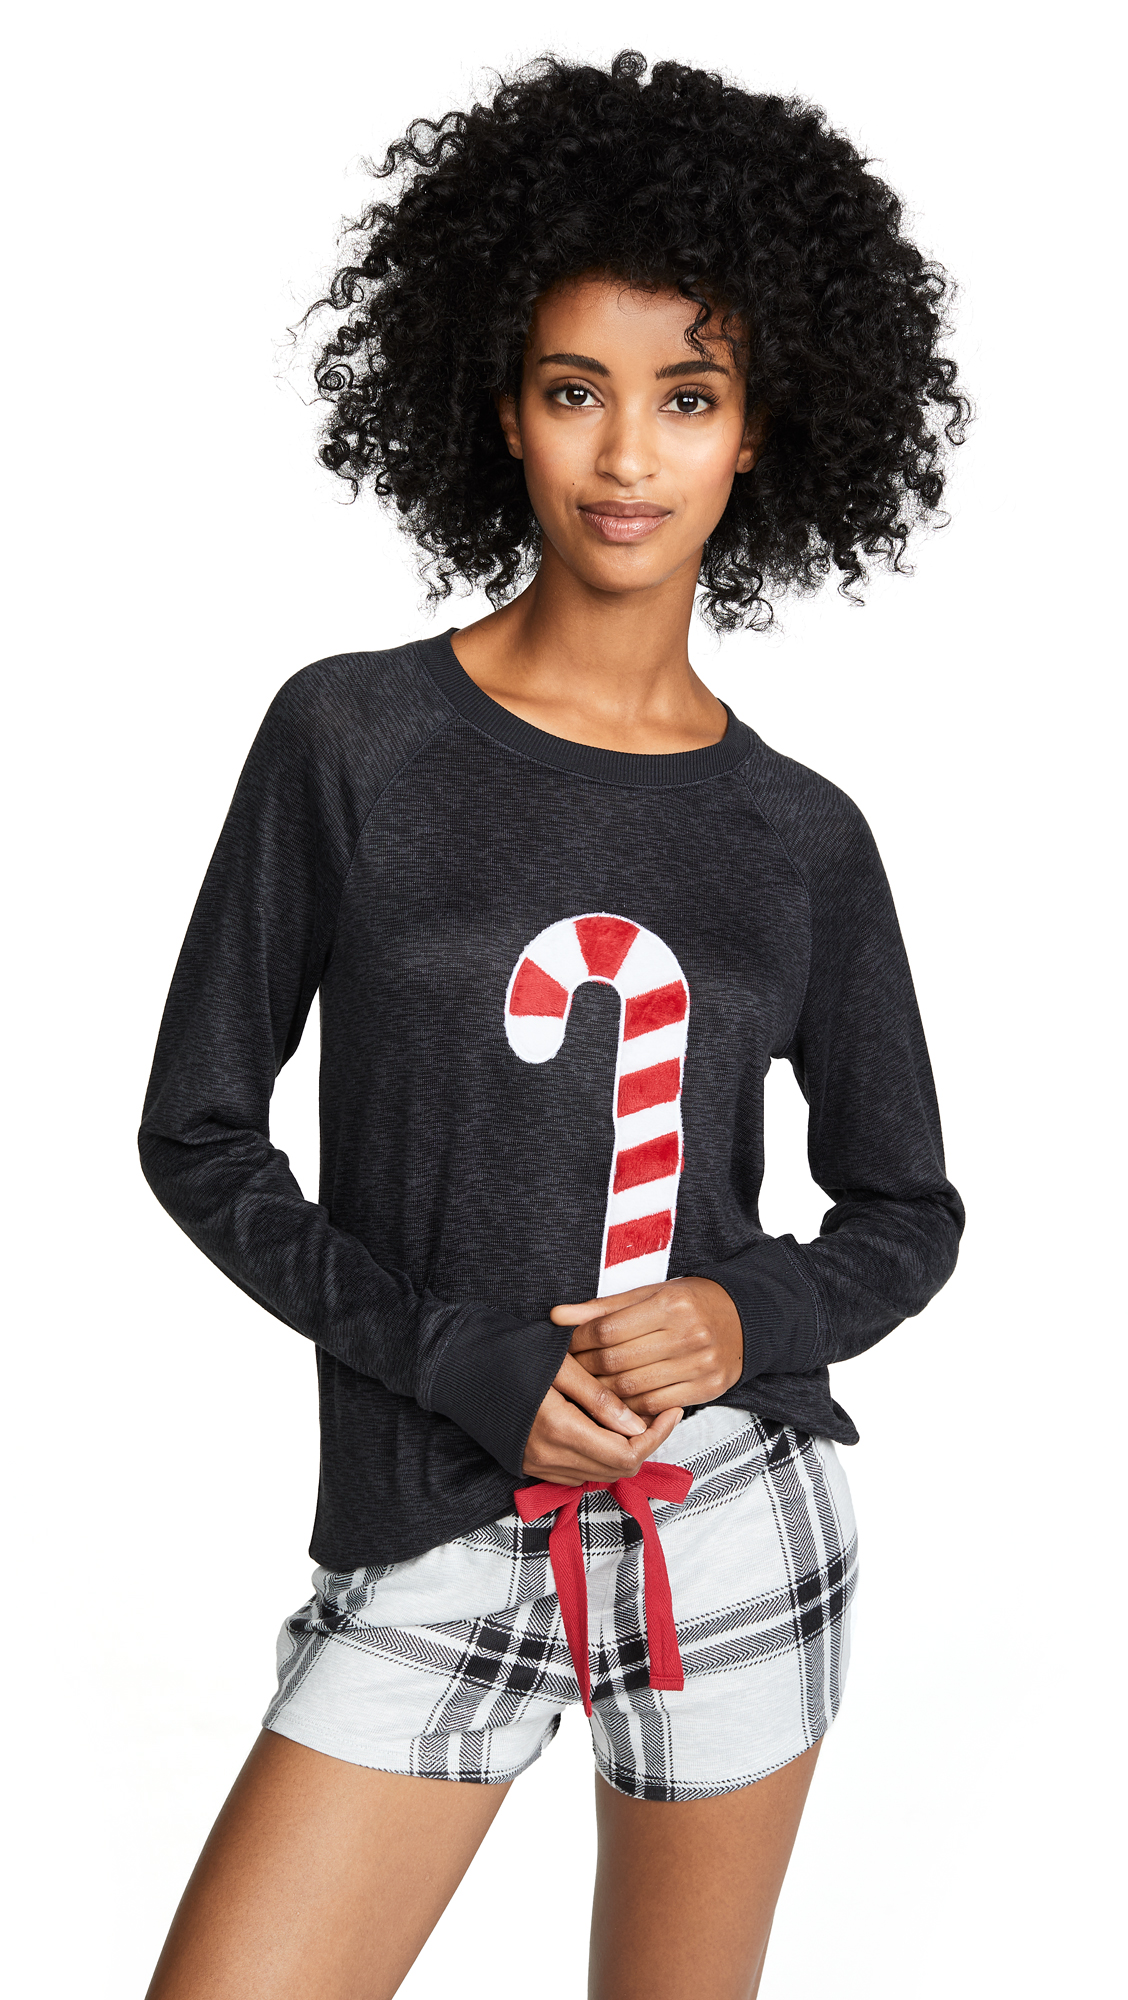 Emerson Road Candy Cane PJ Set In Black